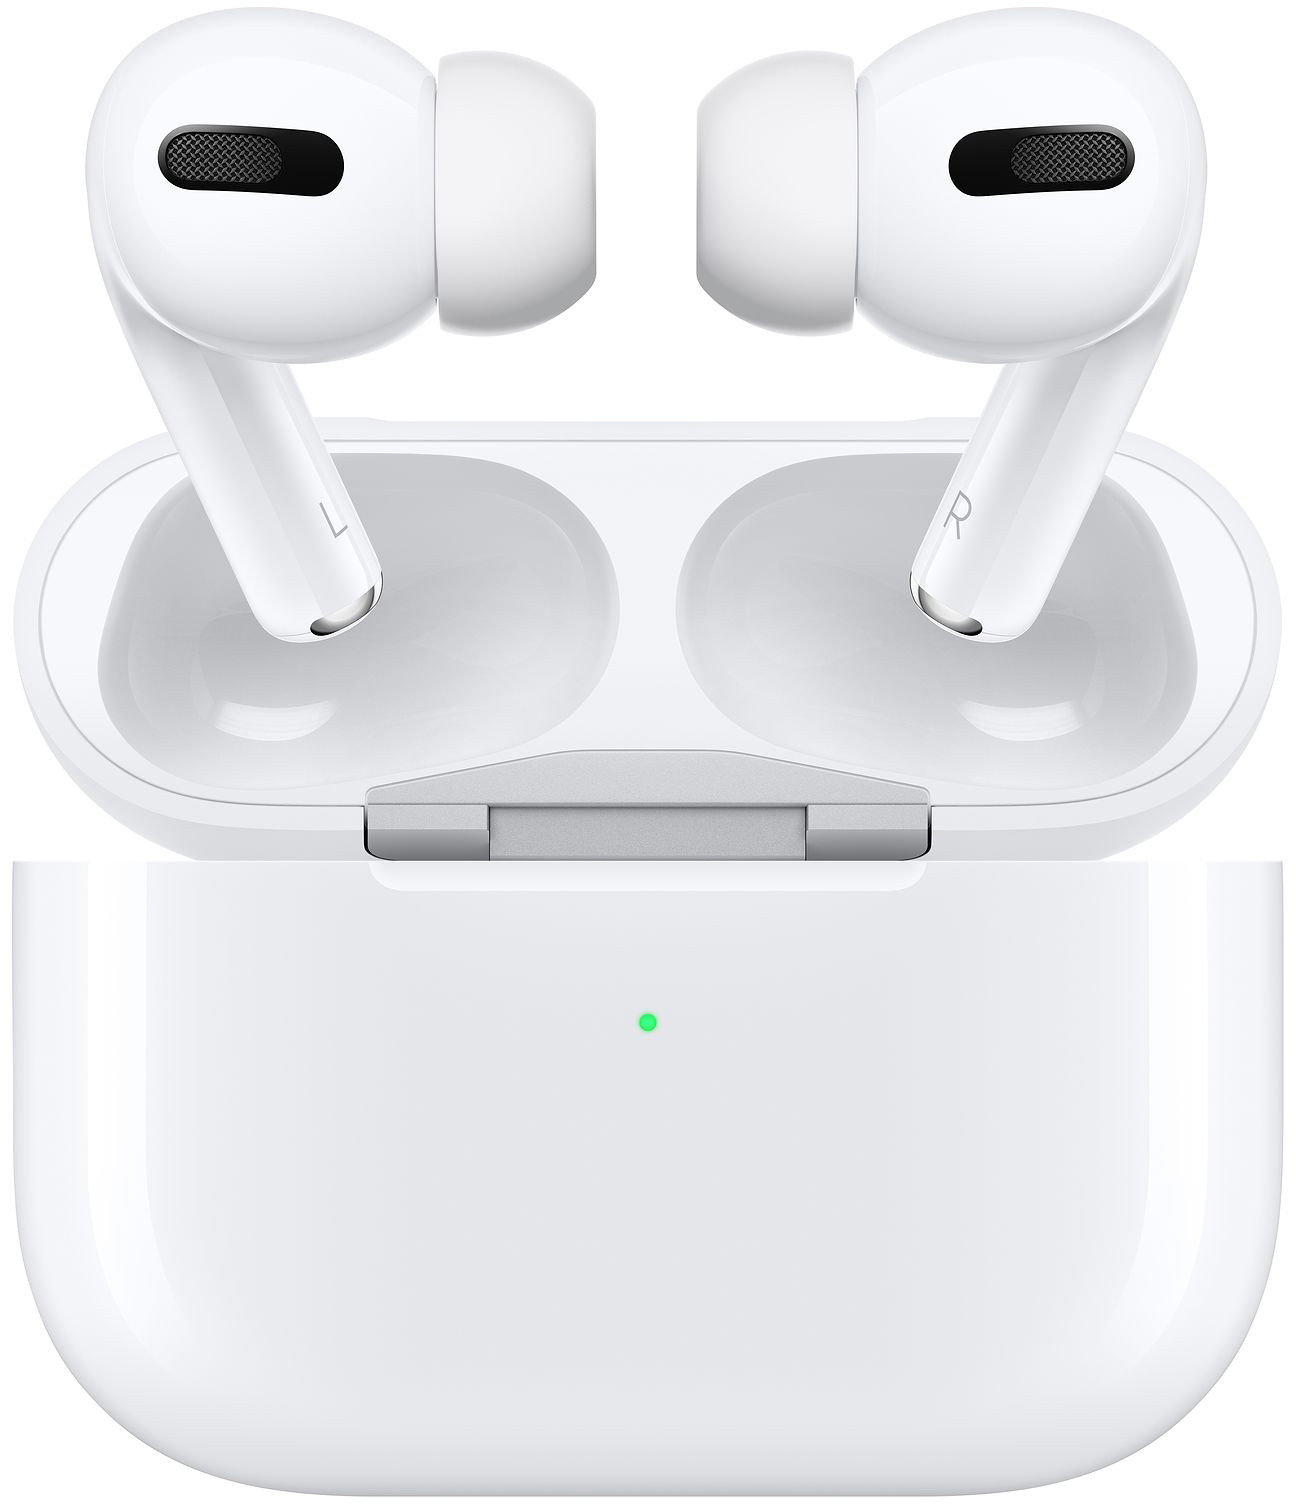 Apple AirPods Pro + wireless charging case (MWP22ZM/A) 190199247000